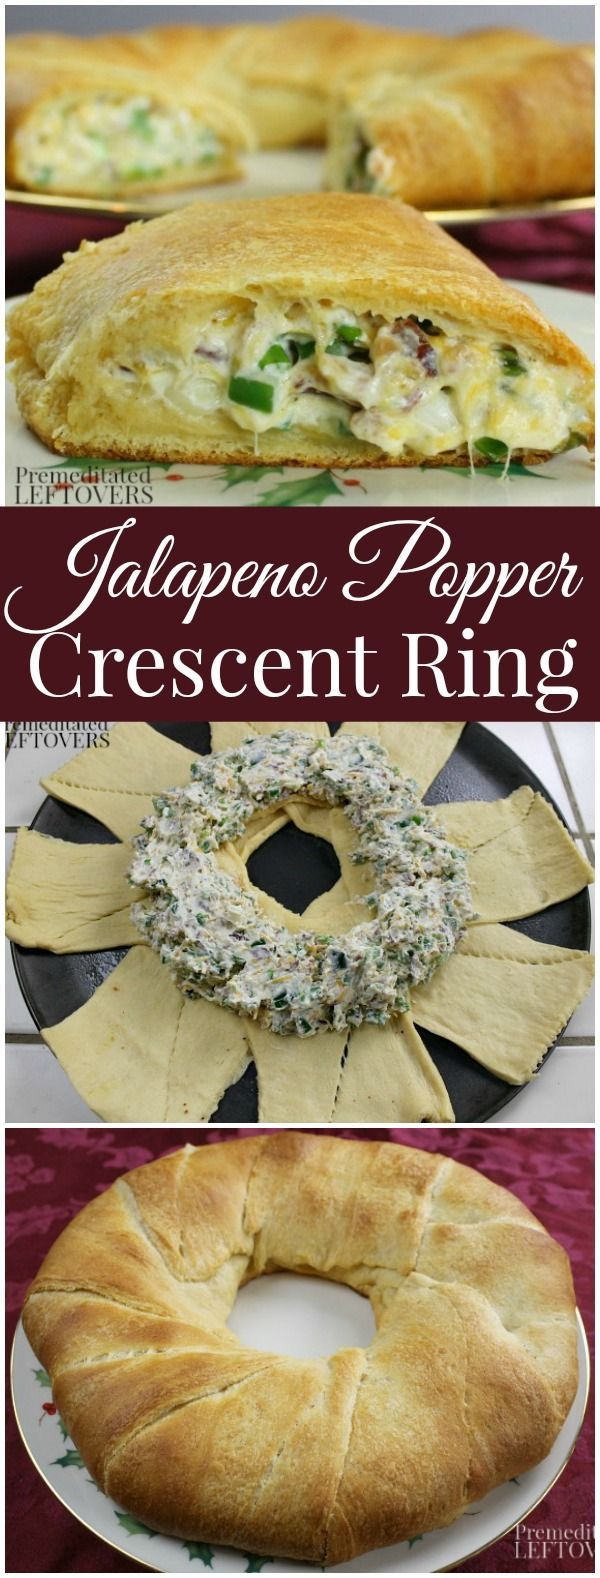 This Jalapeno Popper Crescent Ring is an easy holiday recipe. It only takes 7 ingredients and it can be prepped a day or two ahead of time and baked right before your party begins. Jalapeno Popper Crescent Ring is an easy holiday recipe. It only takes 7 ingredients and it can be prepped a day or two ahead of time and baked right before your party begins.